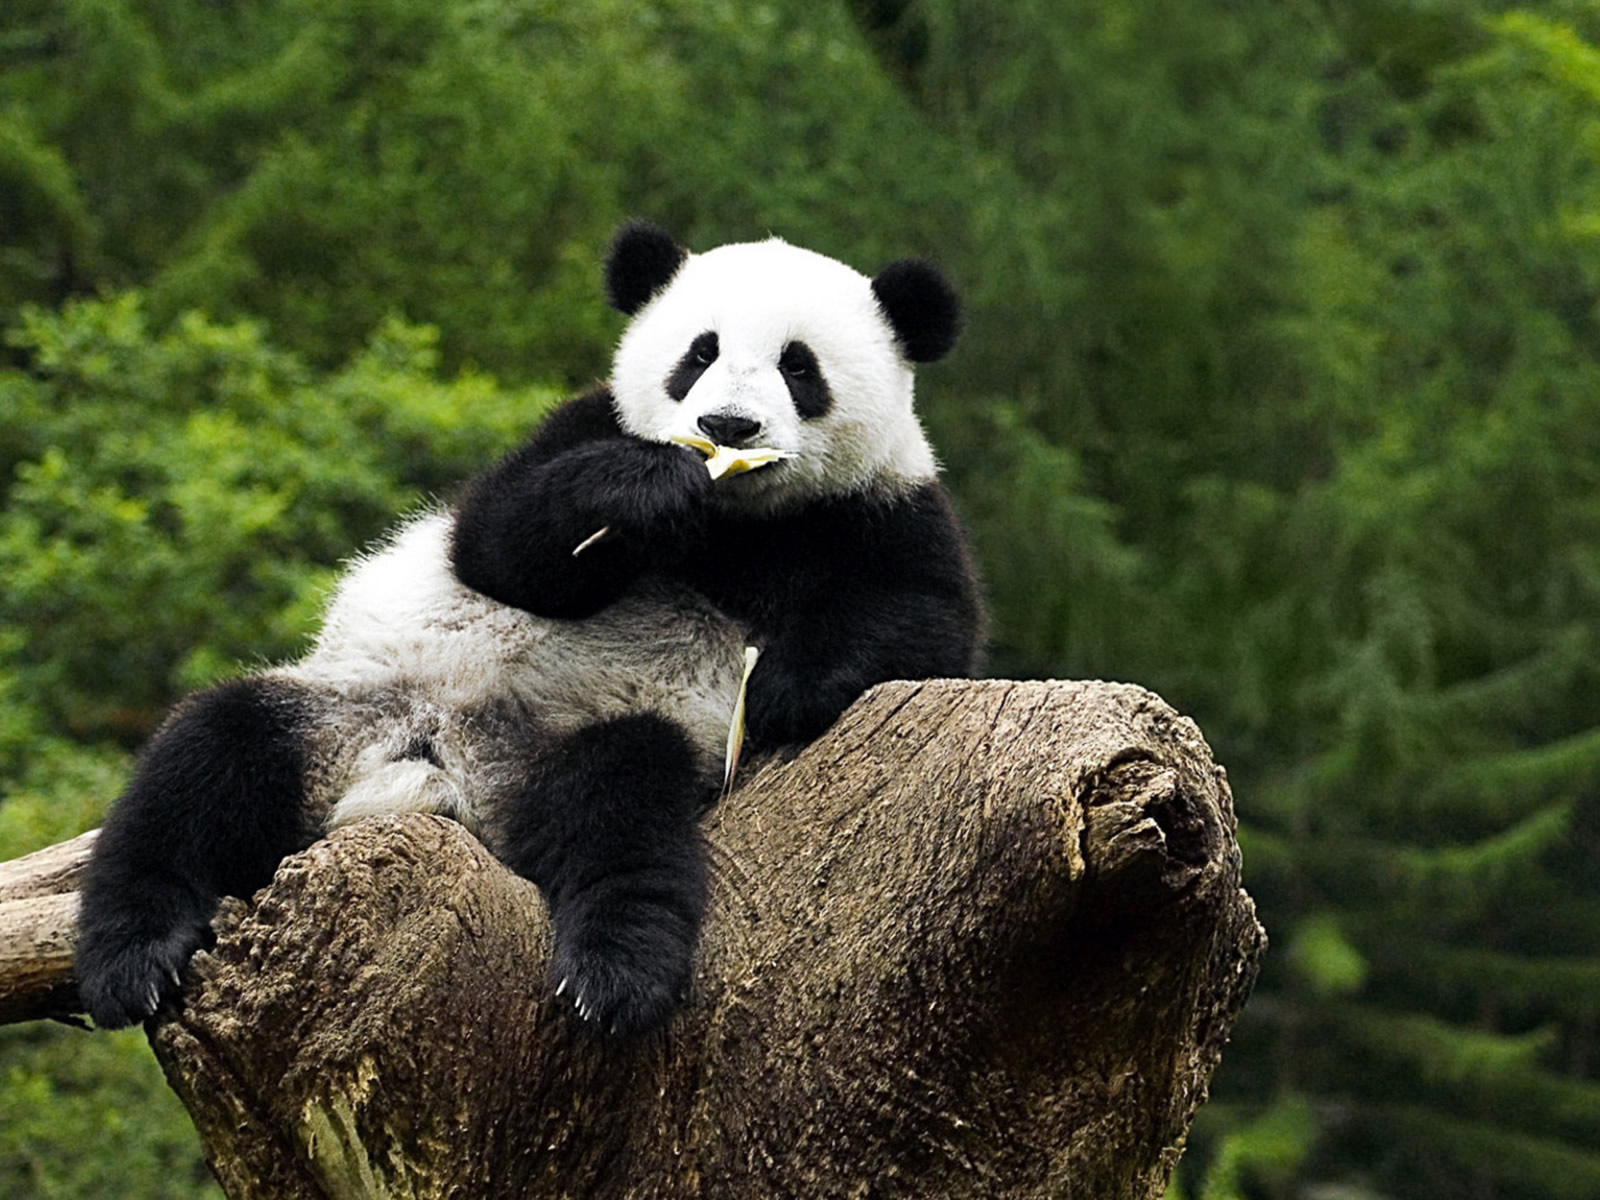 Description Panda Wallpaper HD is a hi res Wallpaper for pc desktops 1600x1200